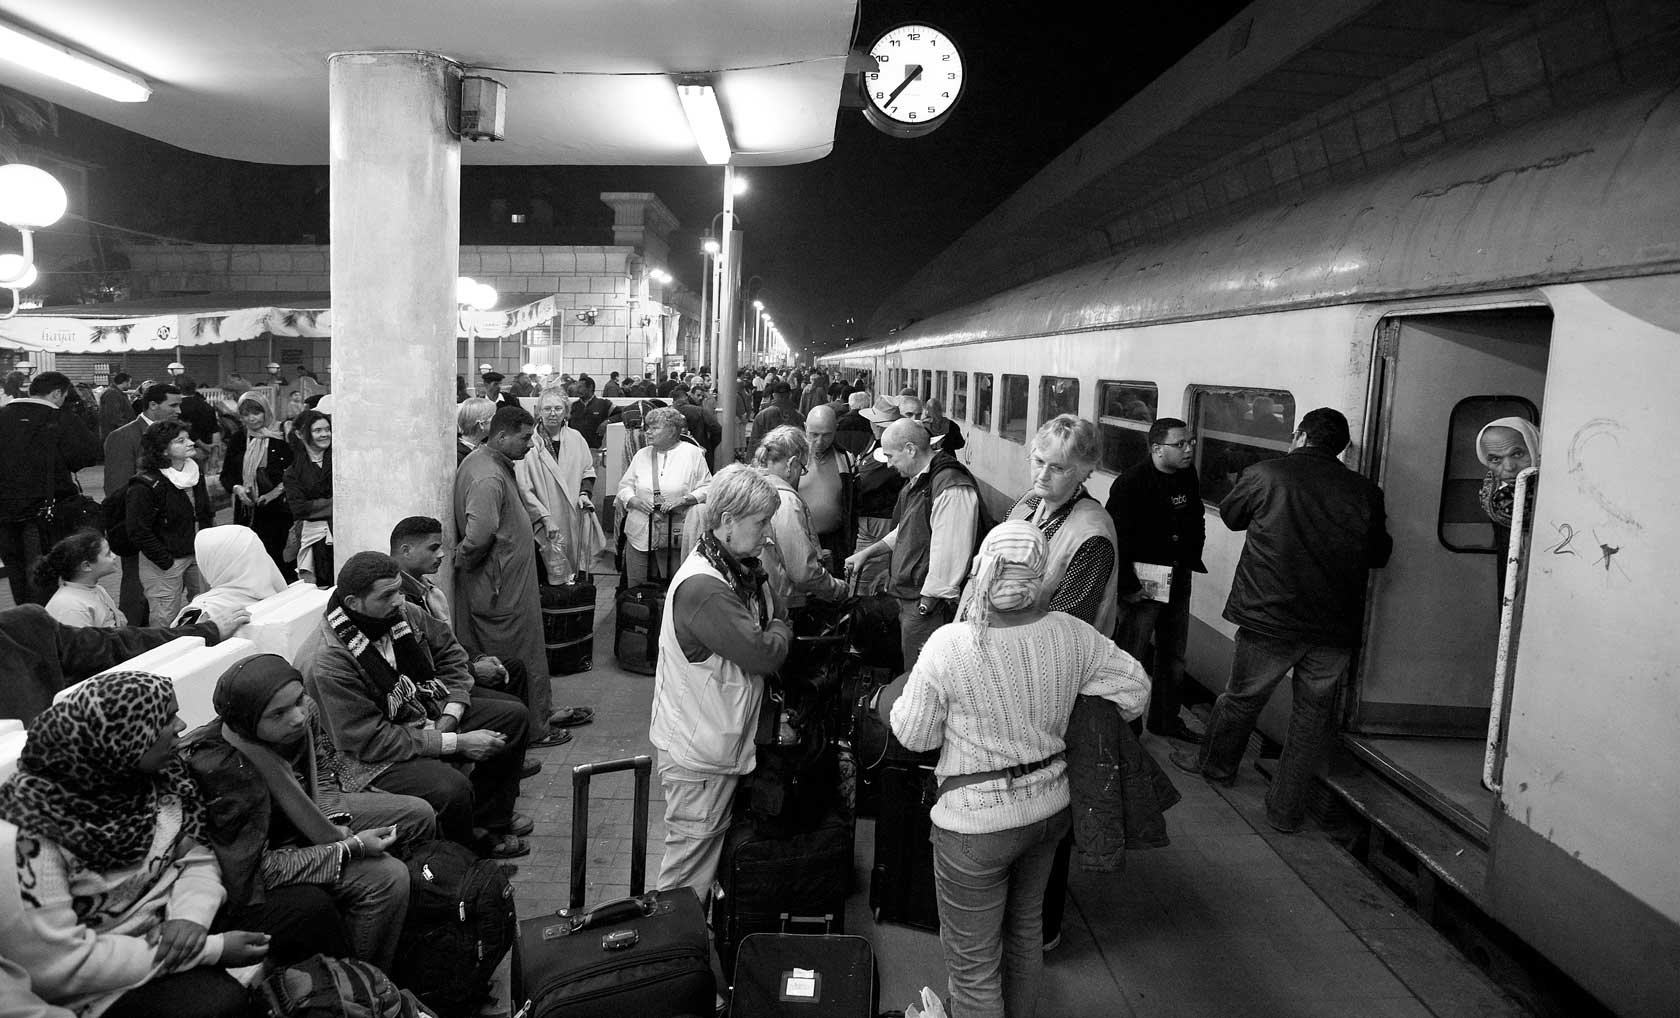 090100_DSC1961-Cairo-Night-Train-Station-Scene.jpg